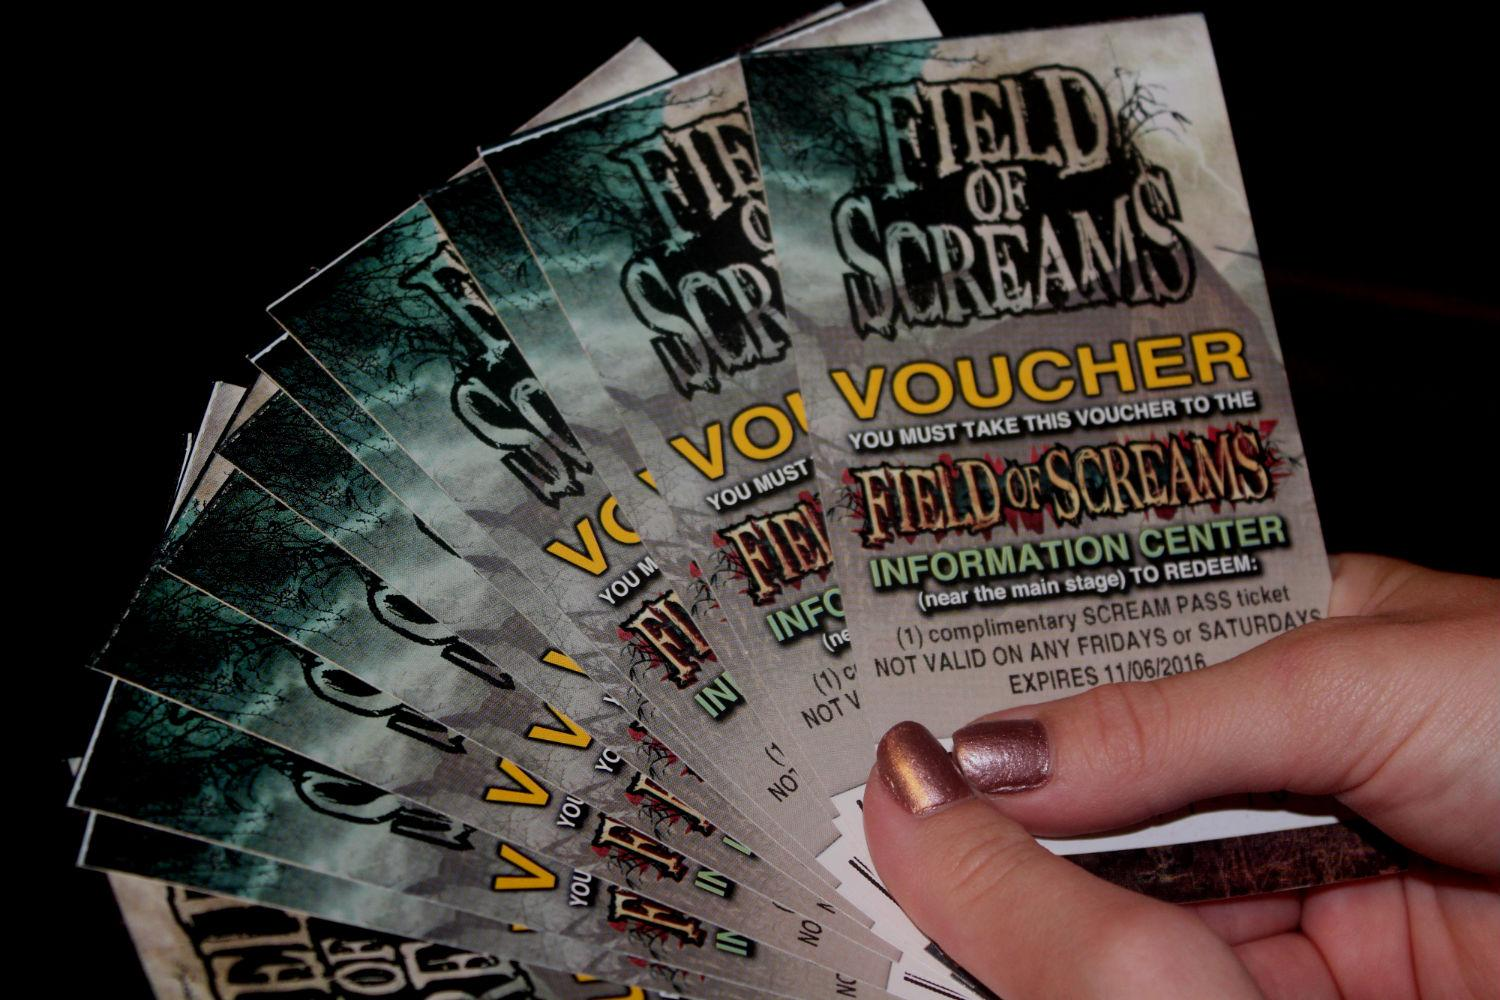 The Patriot is giving away 11 free tickets to the Field of Screams, a popular Halloween attraction located in Lancaster, PA. For more information on how you can win, read the story below.